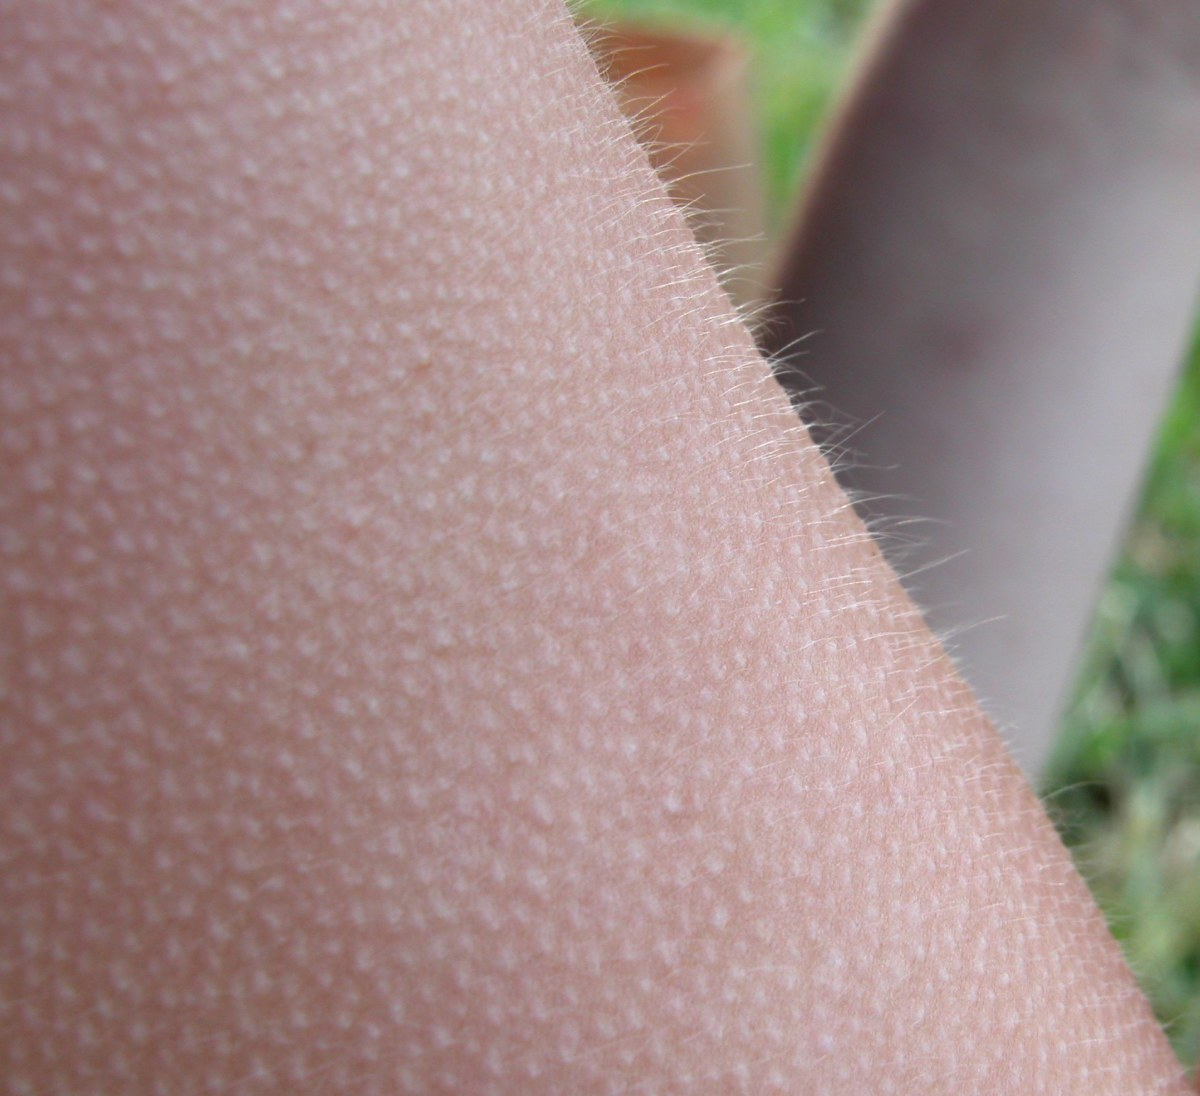 Some sceptics claim that ASMR is nothing more than goosebumps.